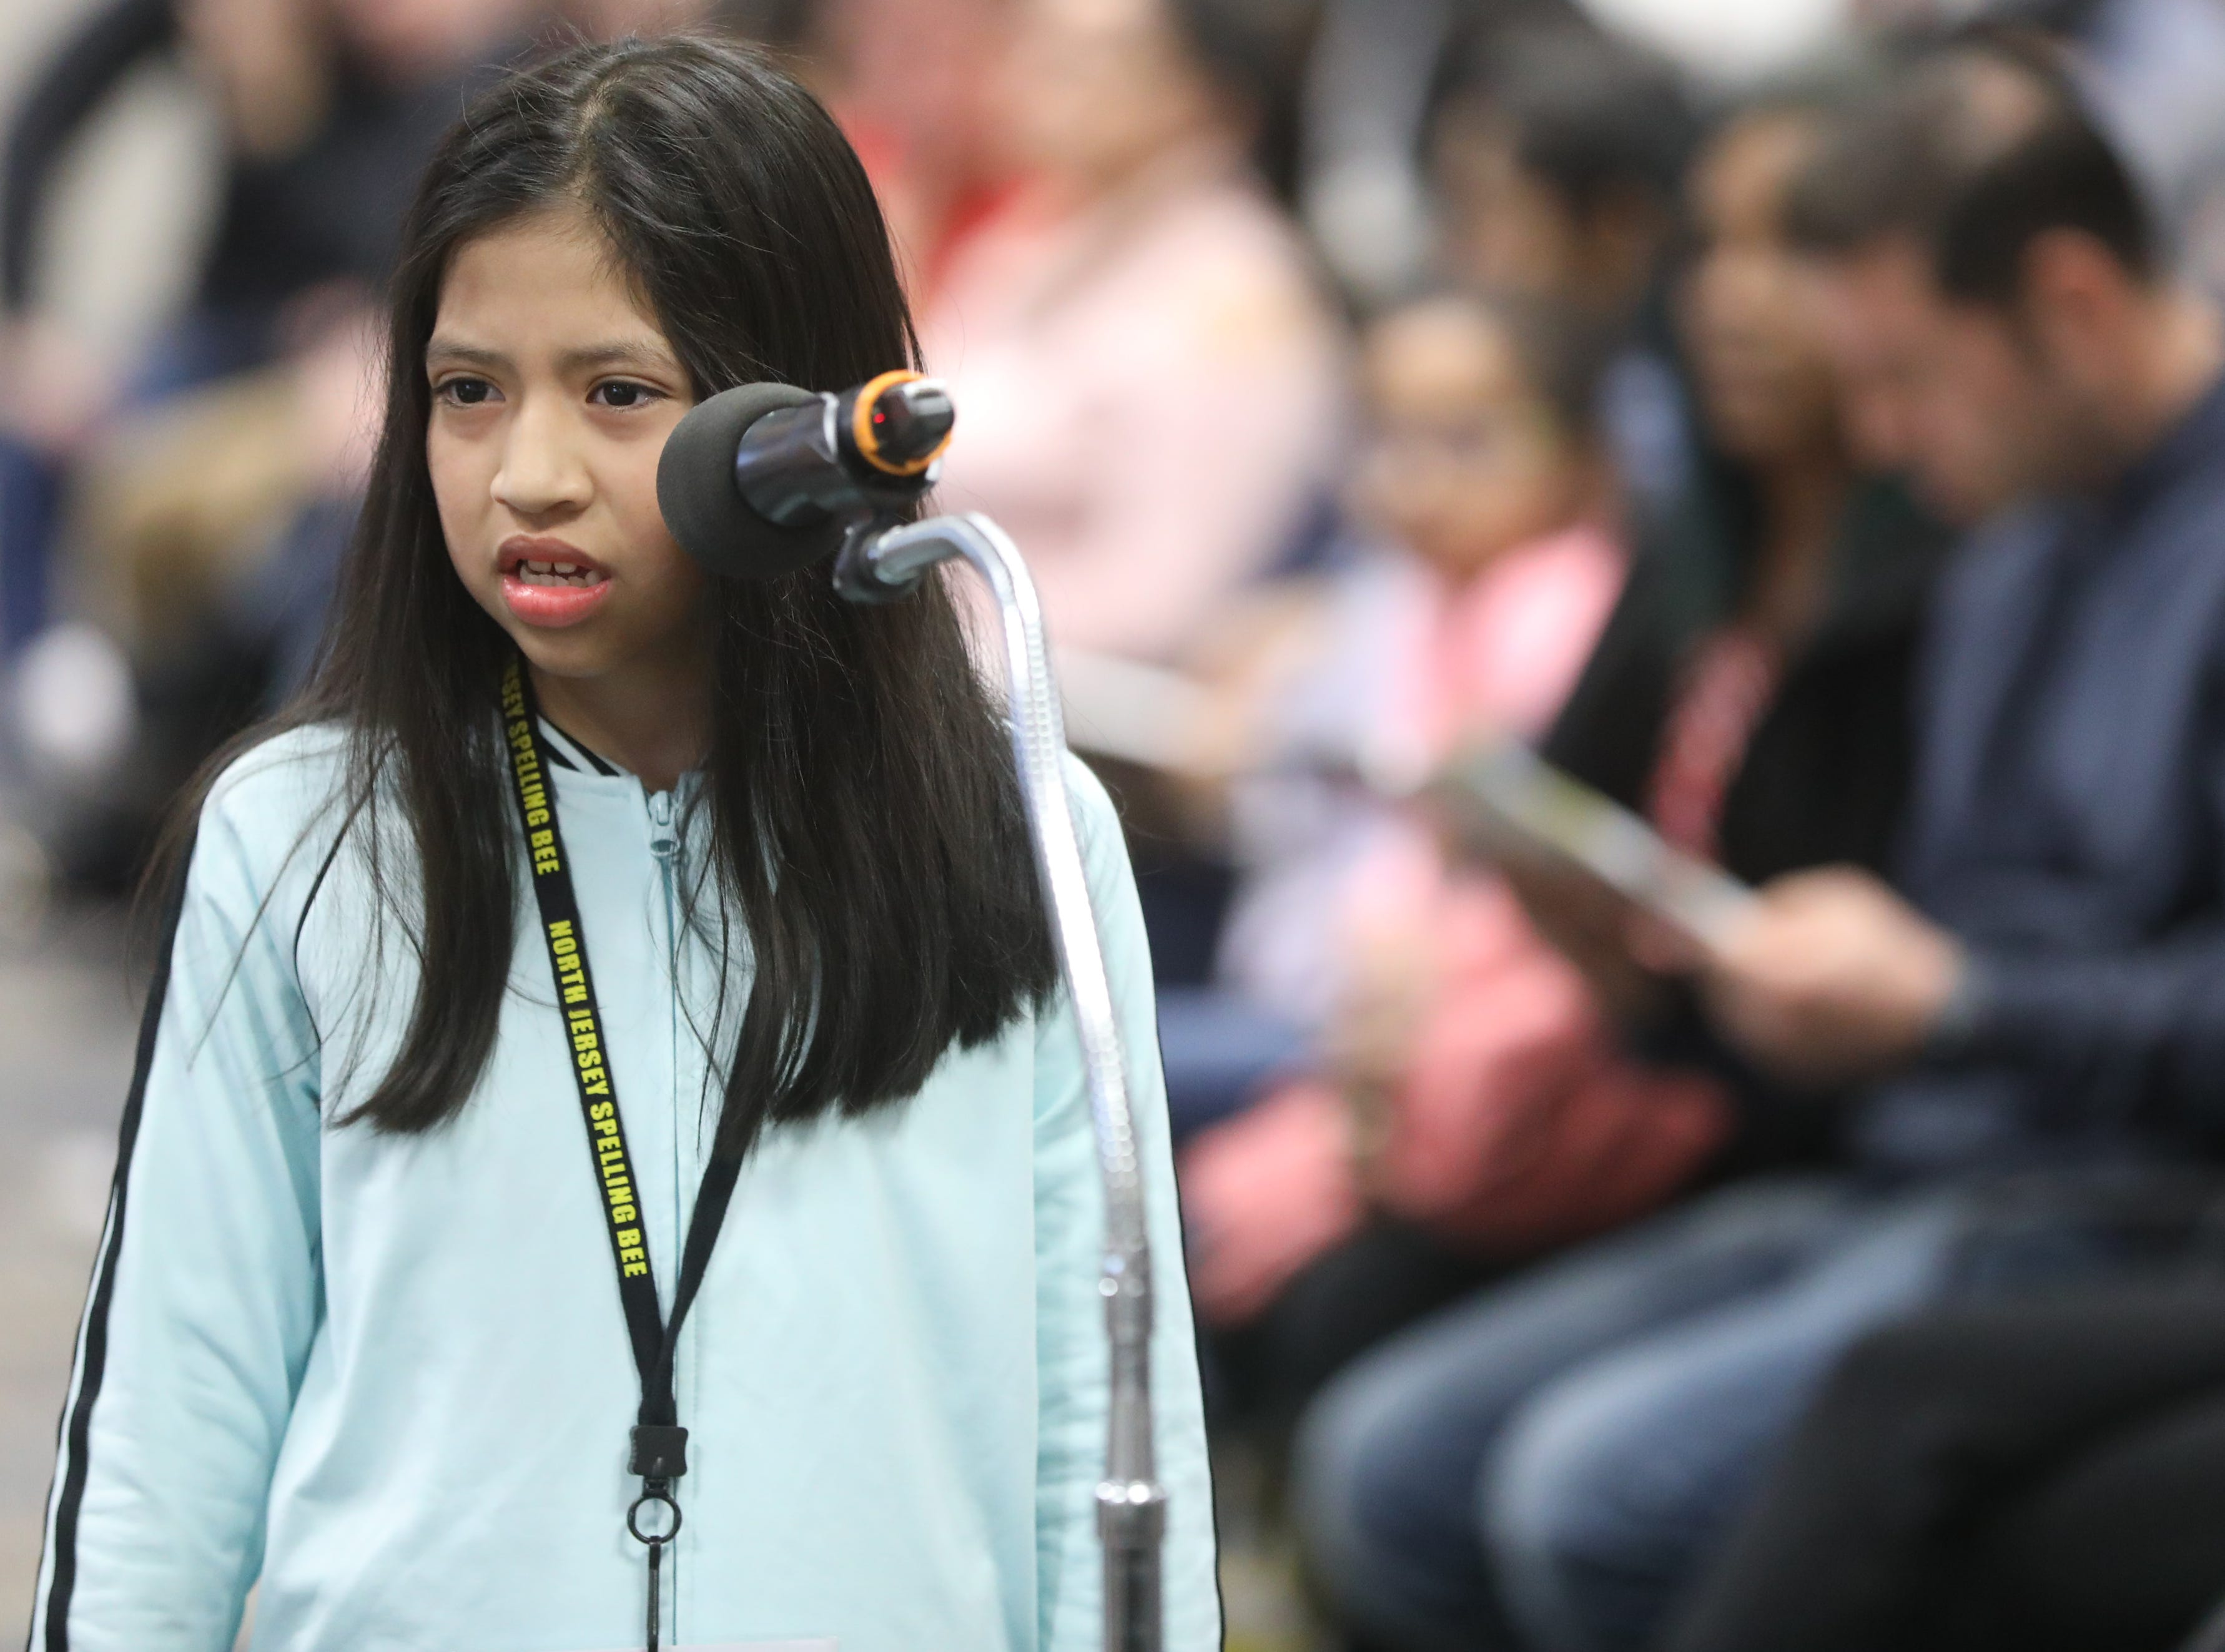 Yaiza Zamora, of Paterson, competes in the first round of the 2019 North Jersey Spelling Bee, in Paramus. Thursday, March 14, 2019